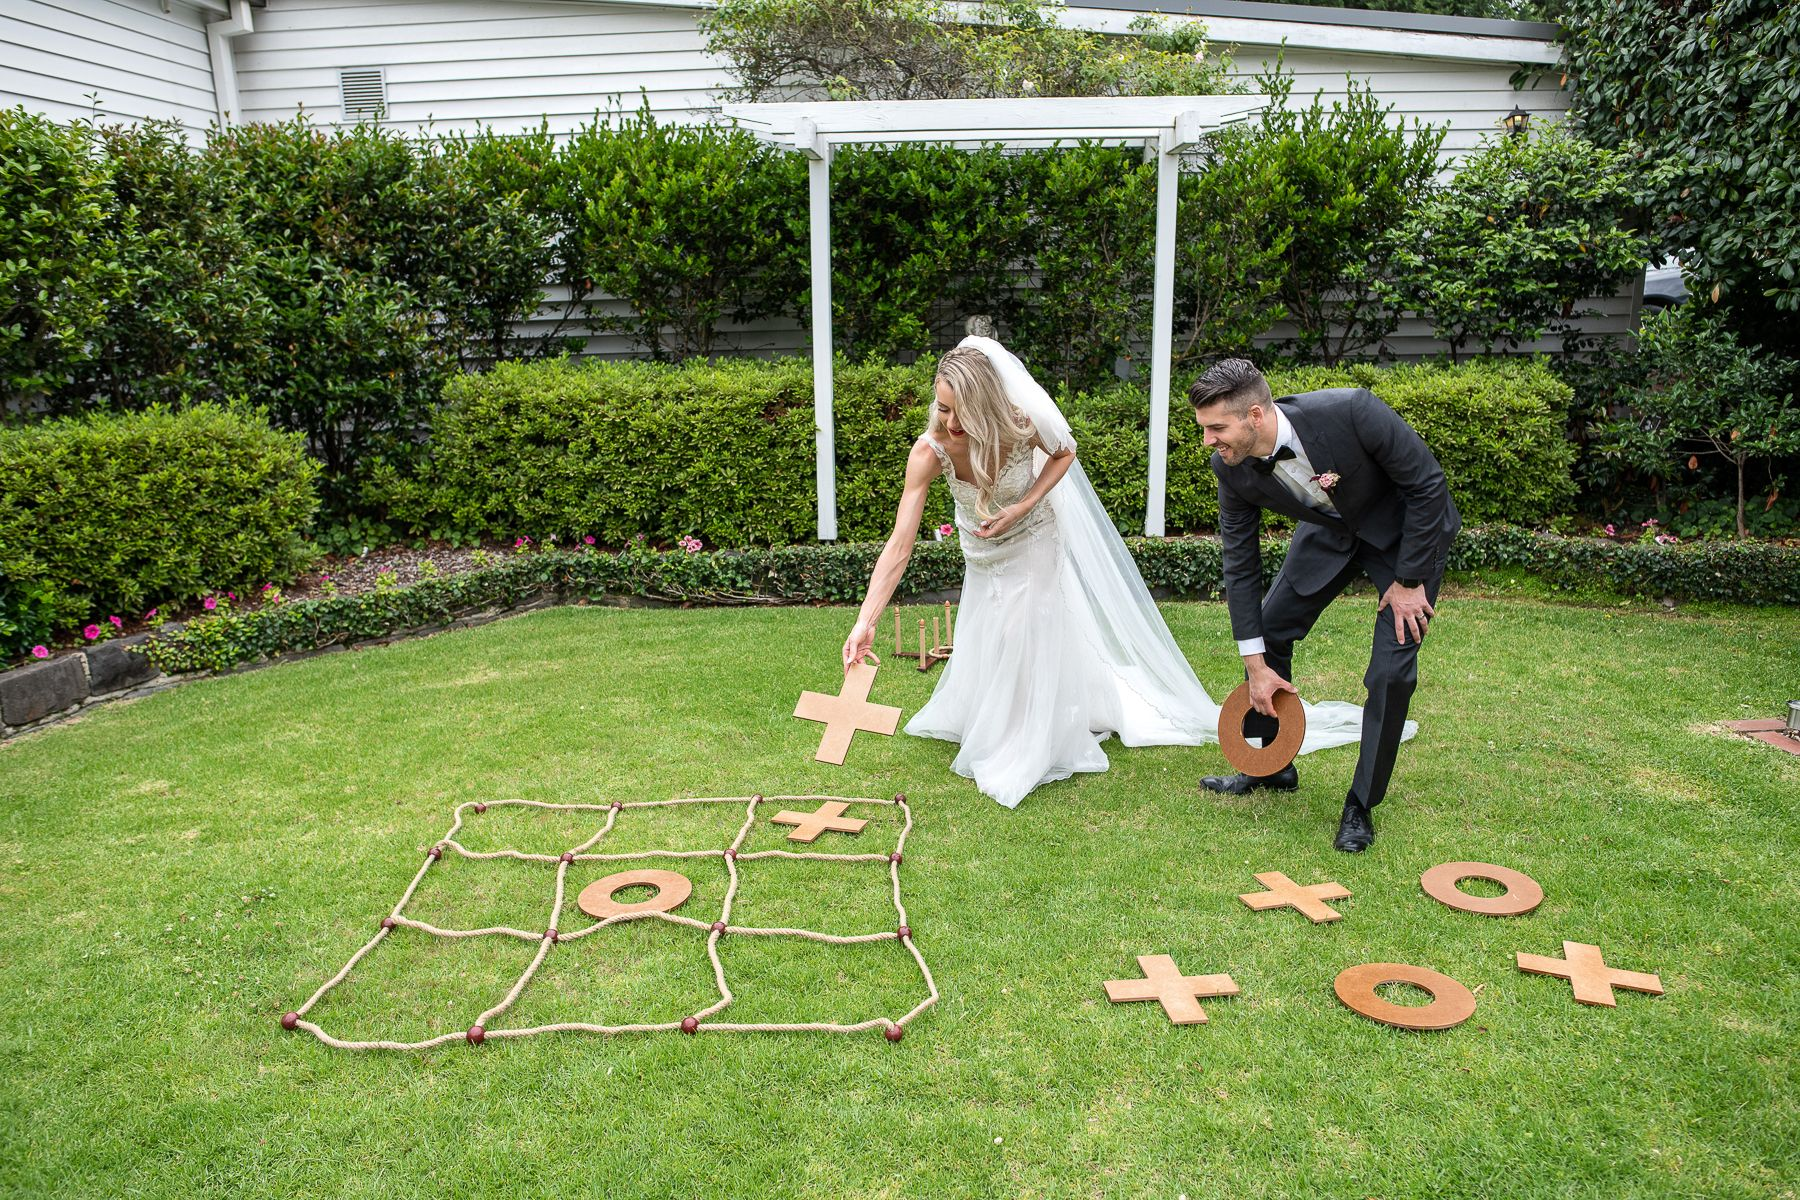 Garden Wedding Games Wedding venues melbourne, Garden